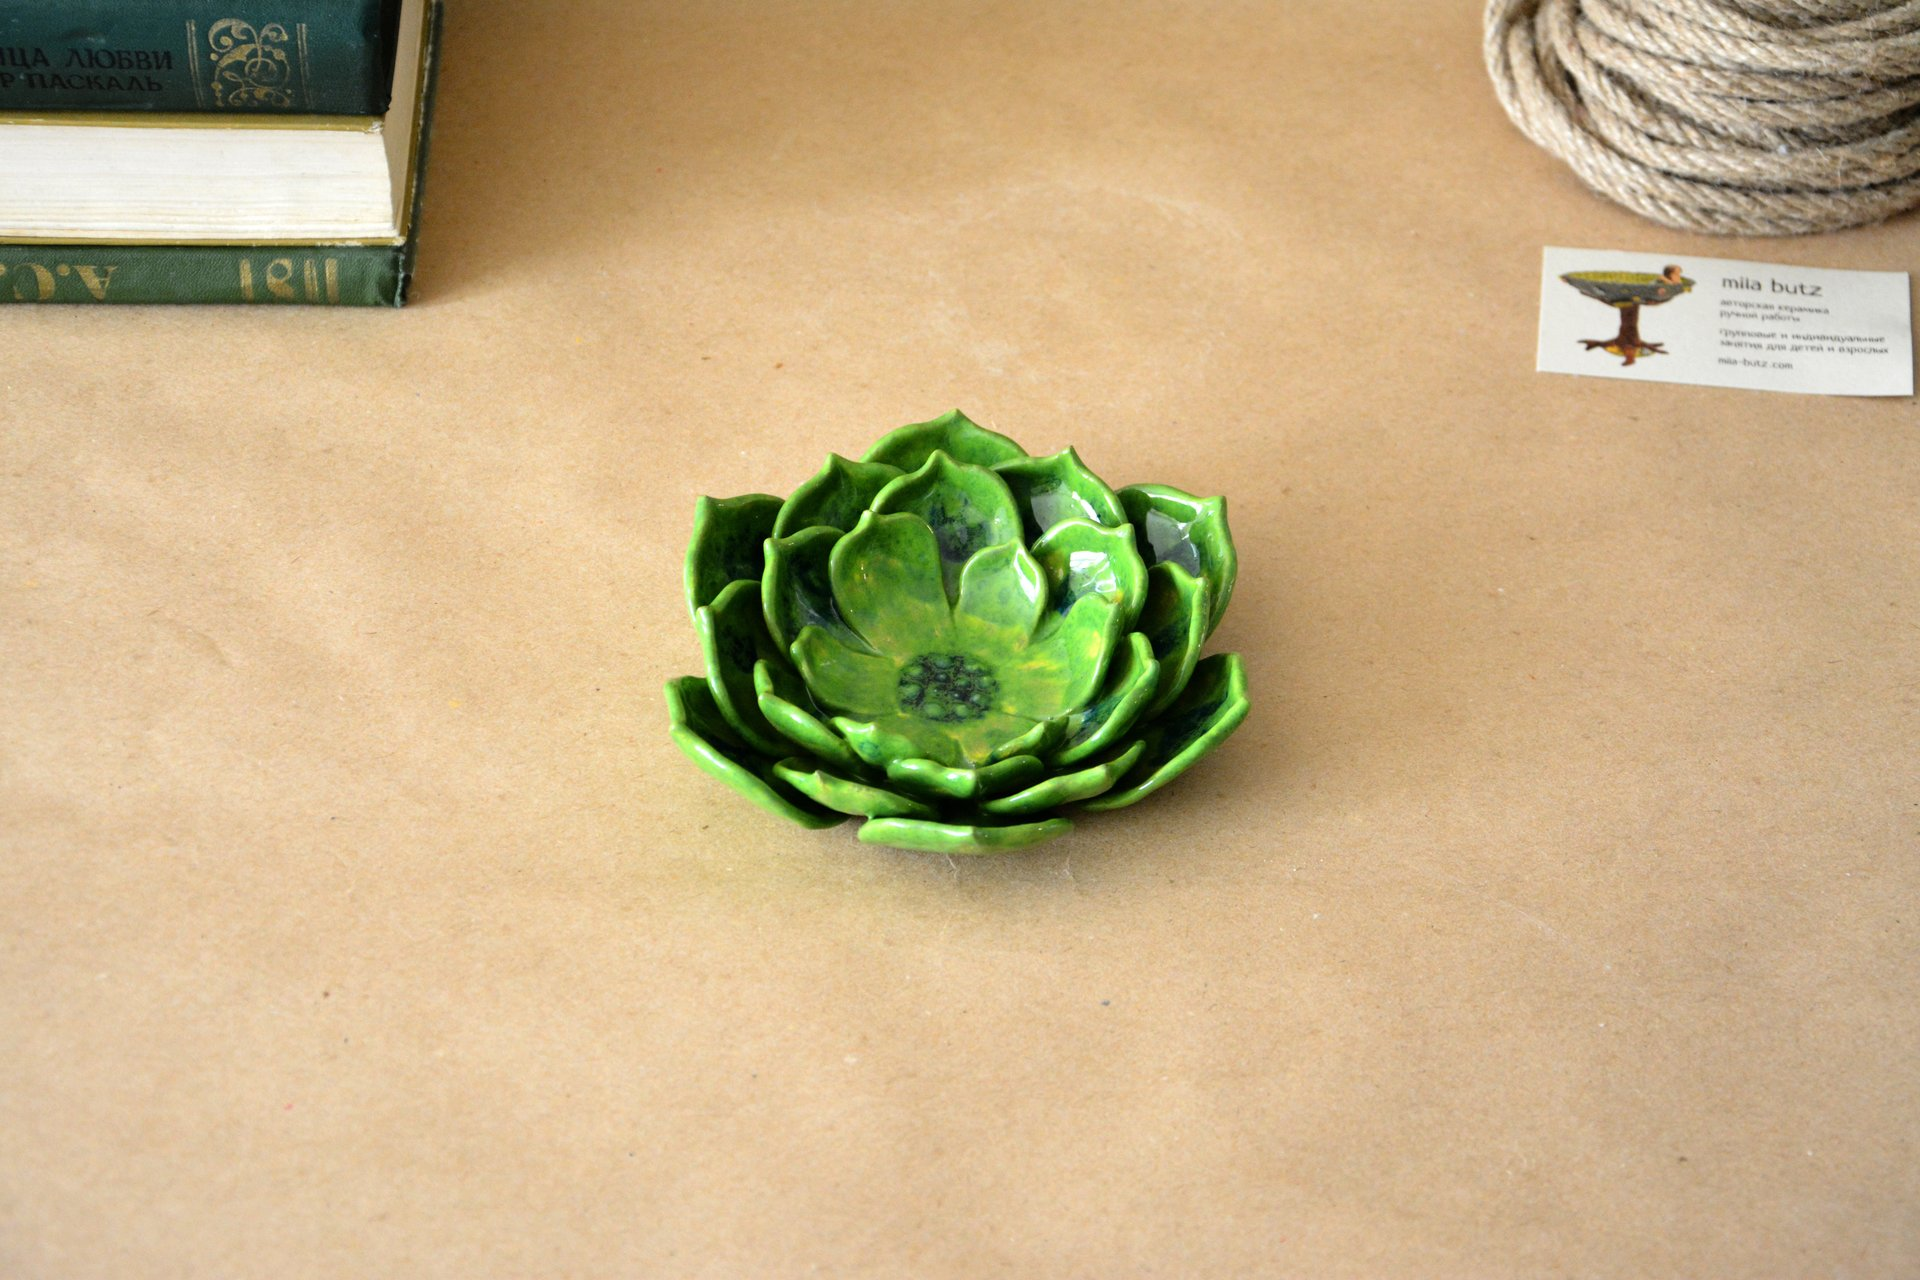 Light green candle holder a Succulent - Ceramic Candl-holders, diameter - 14 cm, photo 1 of 4.